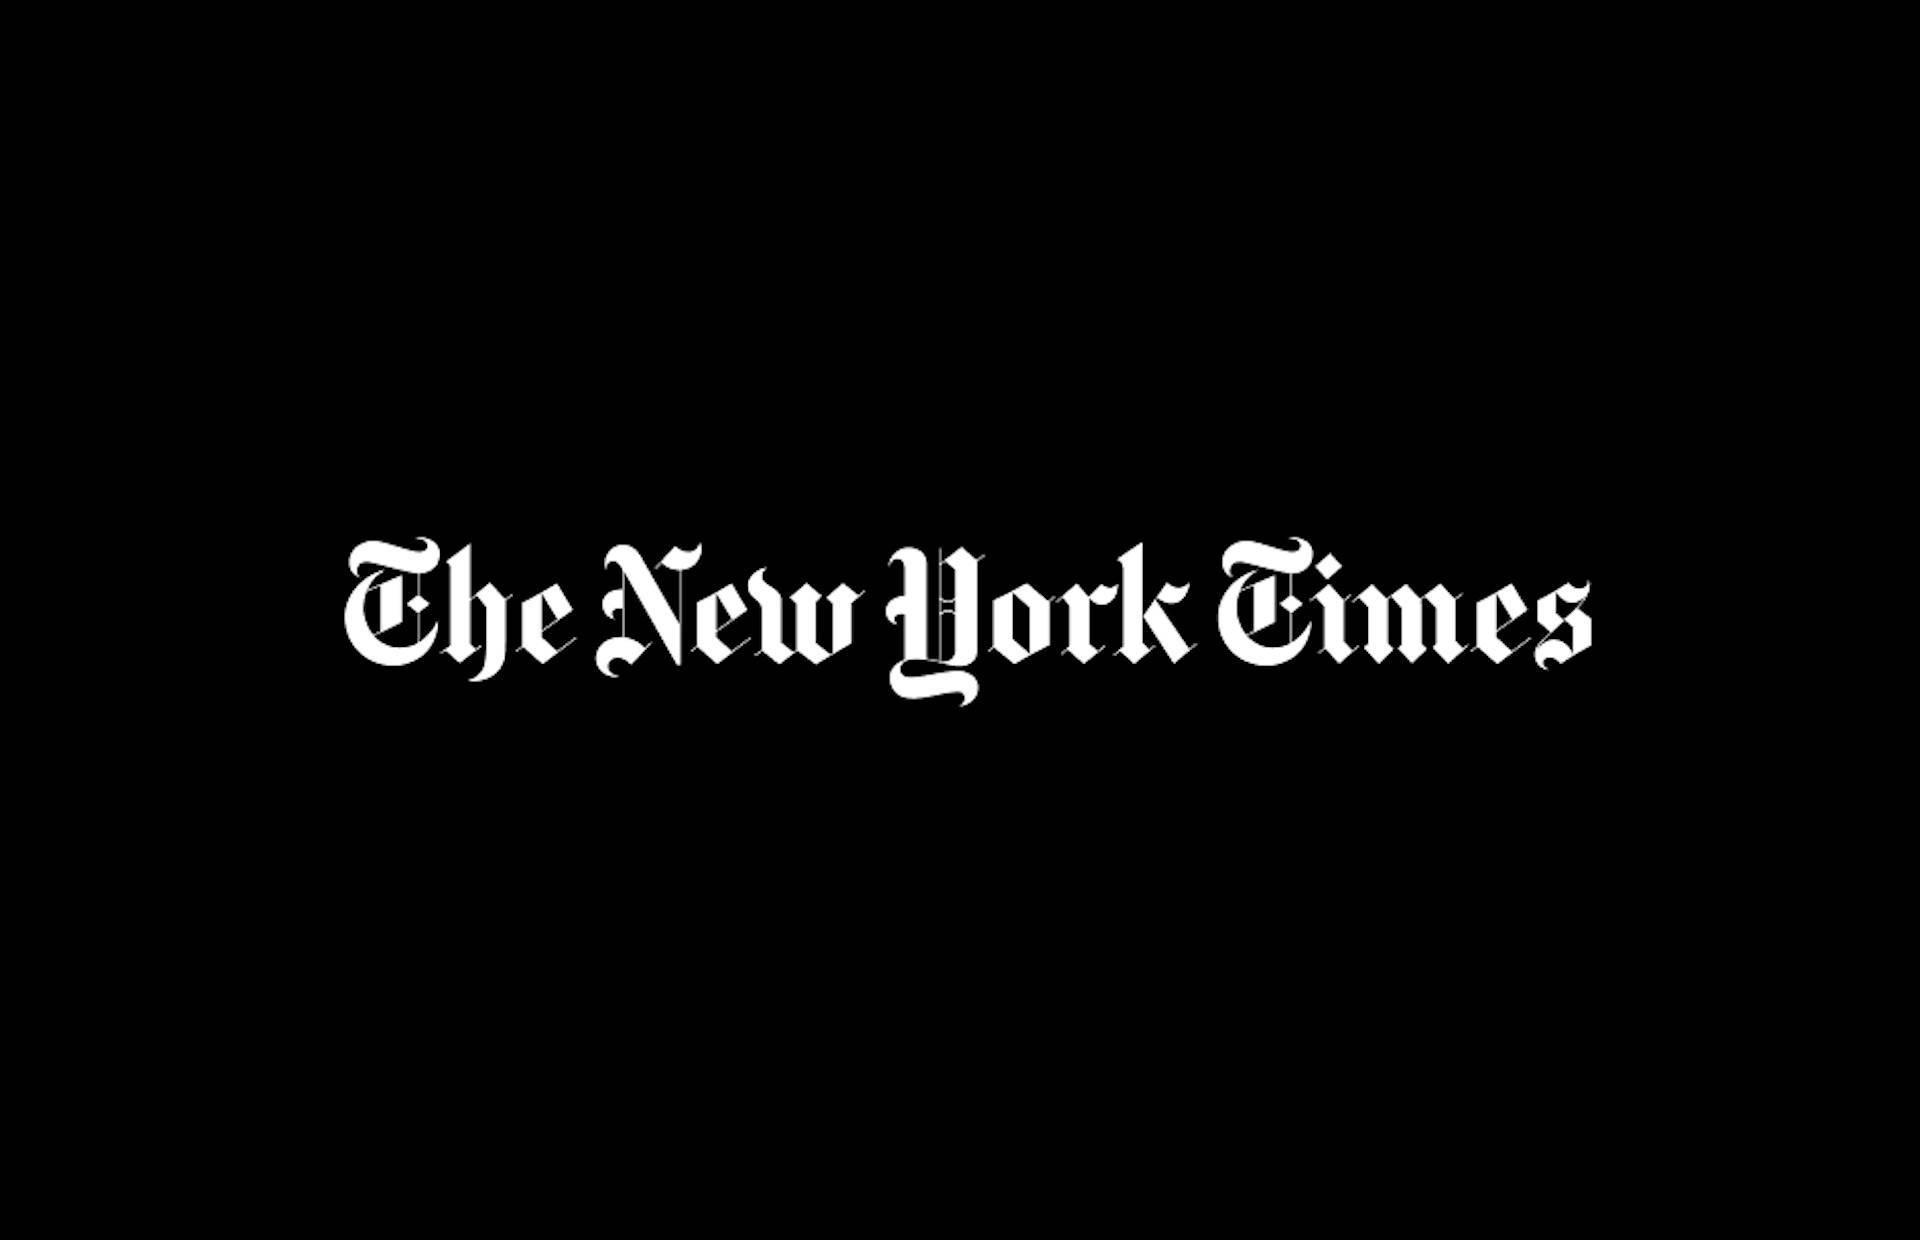 New York Times (Upcoming)